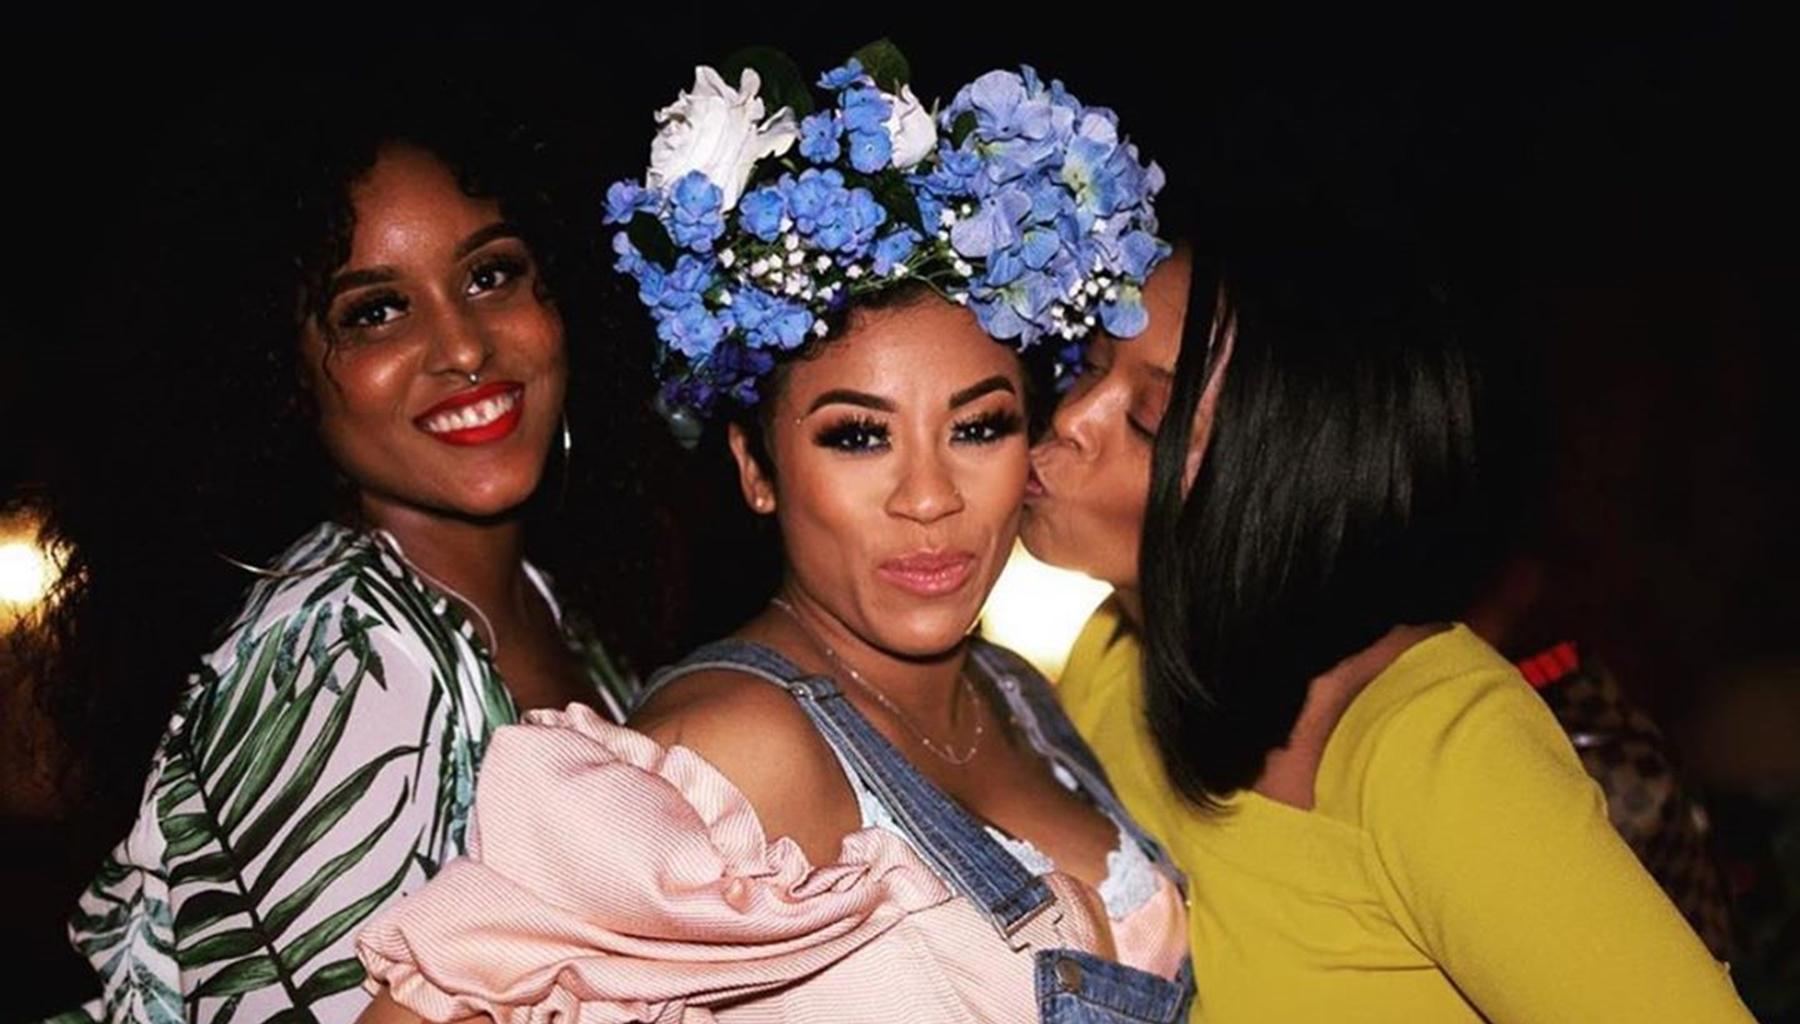 Keyshia Cole Looks Stunning In Baby Shower Photo Wearing Sheer White Gown With Boyfriend Niko Khalé And Mother Francine 'Frankie' Lons By Her Side